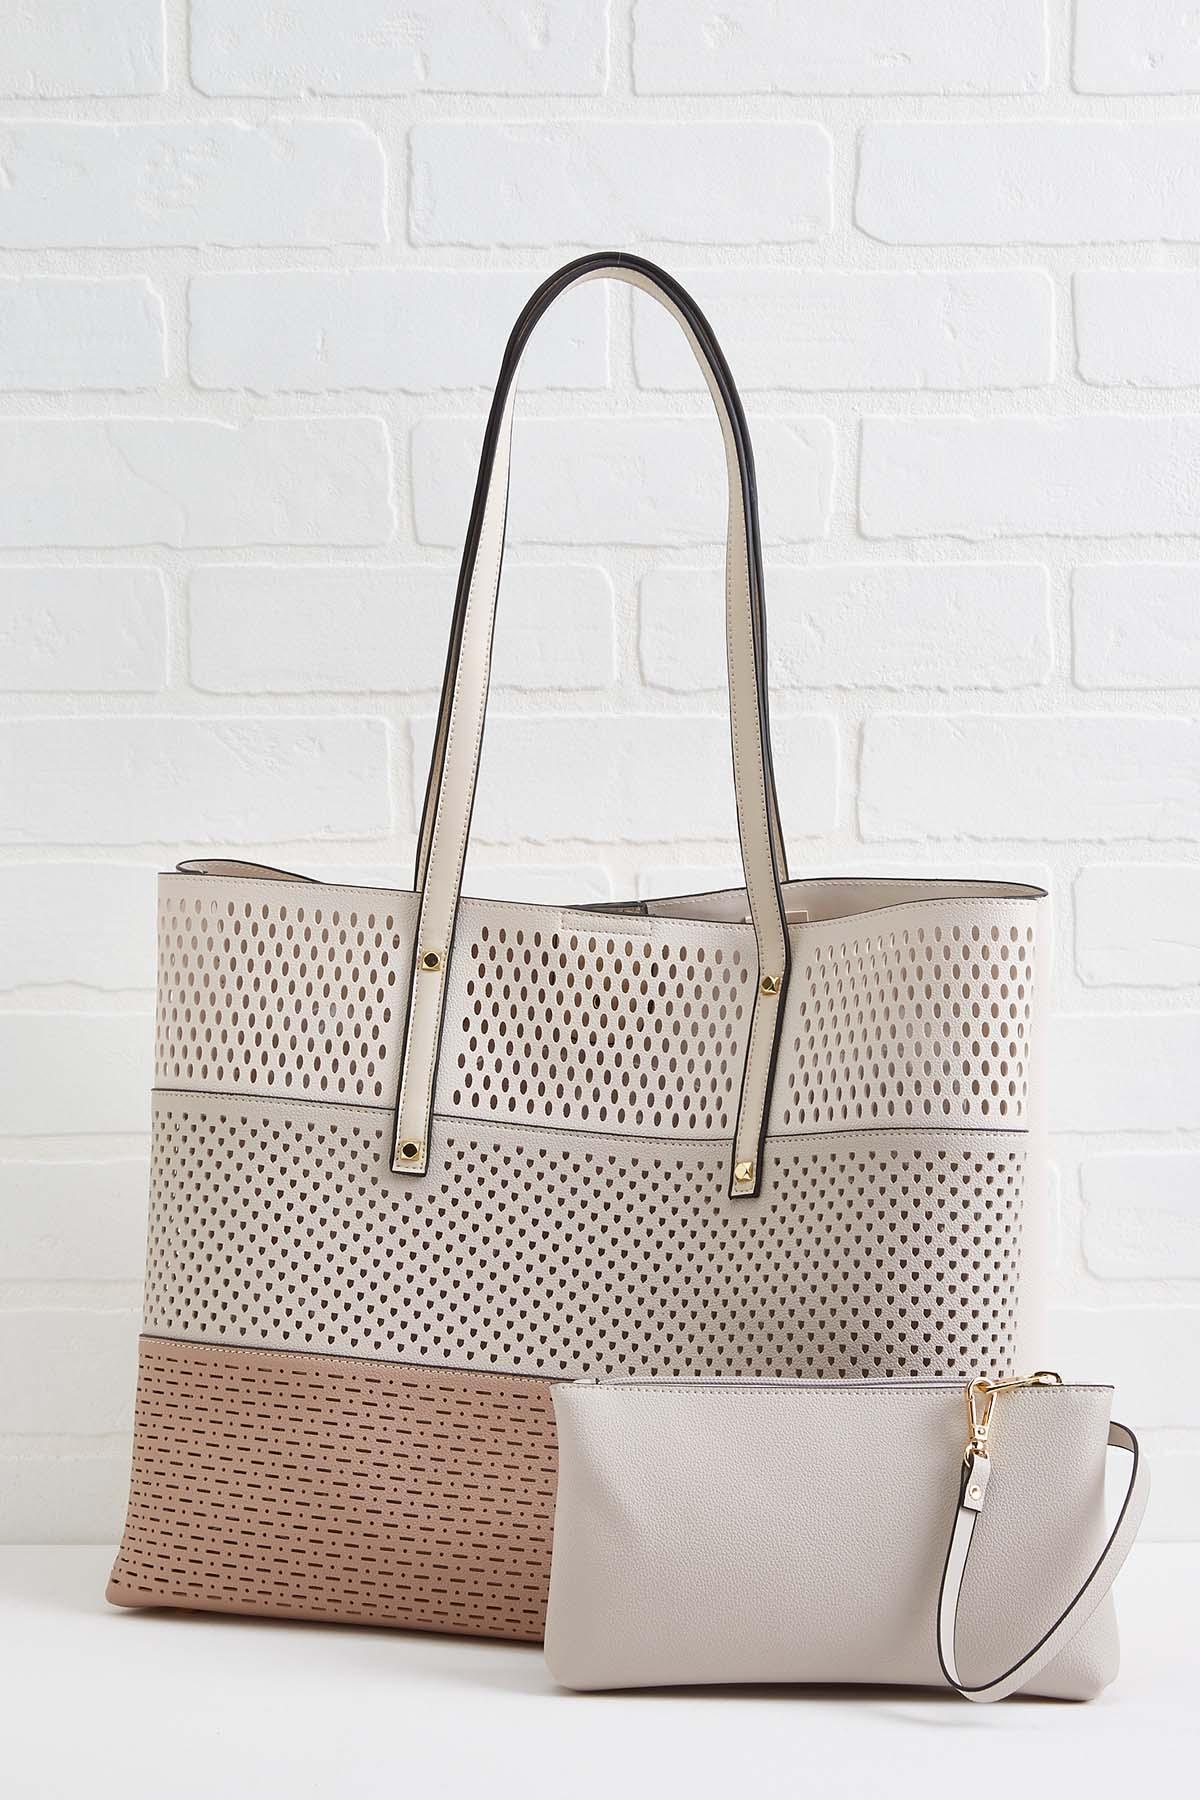 The Perf- Ect Tote